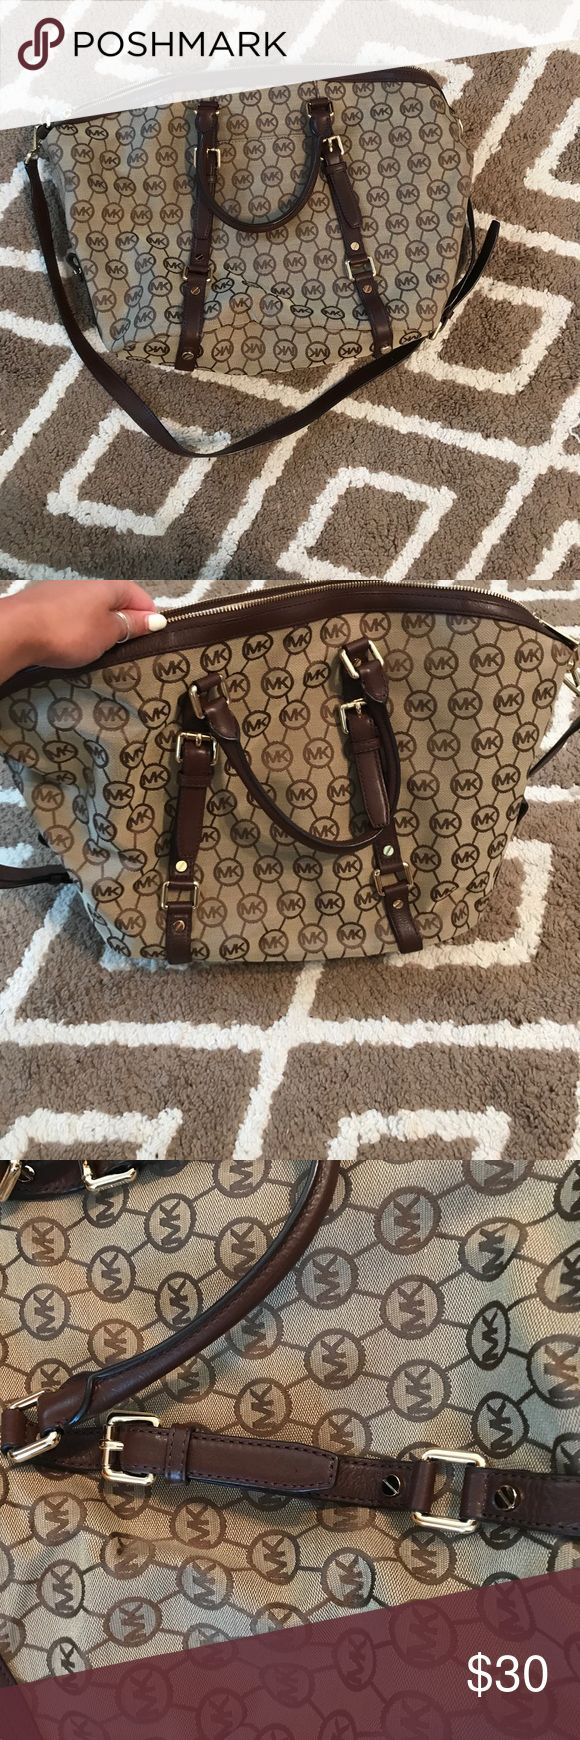 Tan and brown Michael Kors bag Large tan/brown Michael Kors bag. Has long Sholder strap that can be removed. 4 smaller pockets on inside and one bigger zipper pocket. Never used. Excellent condition! Michael Kors Bags